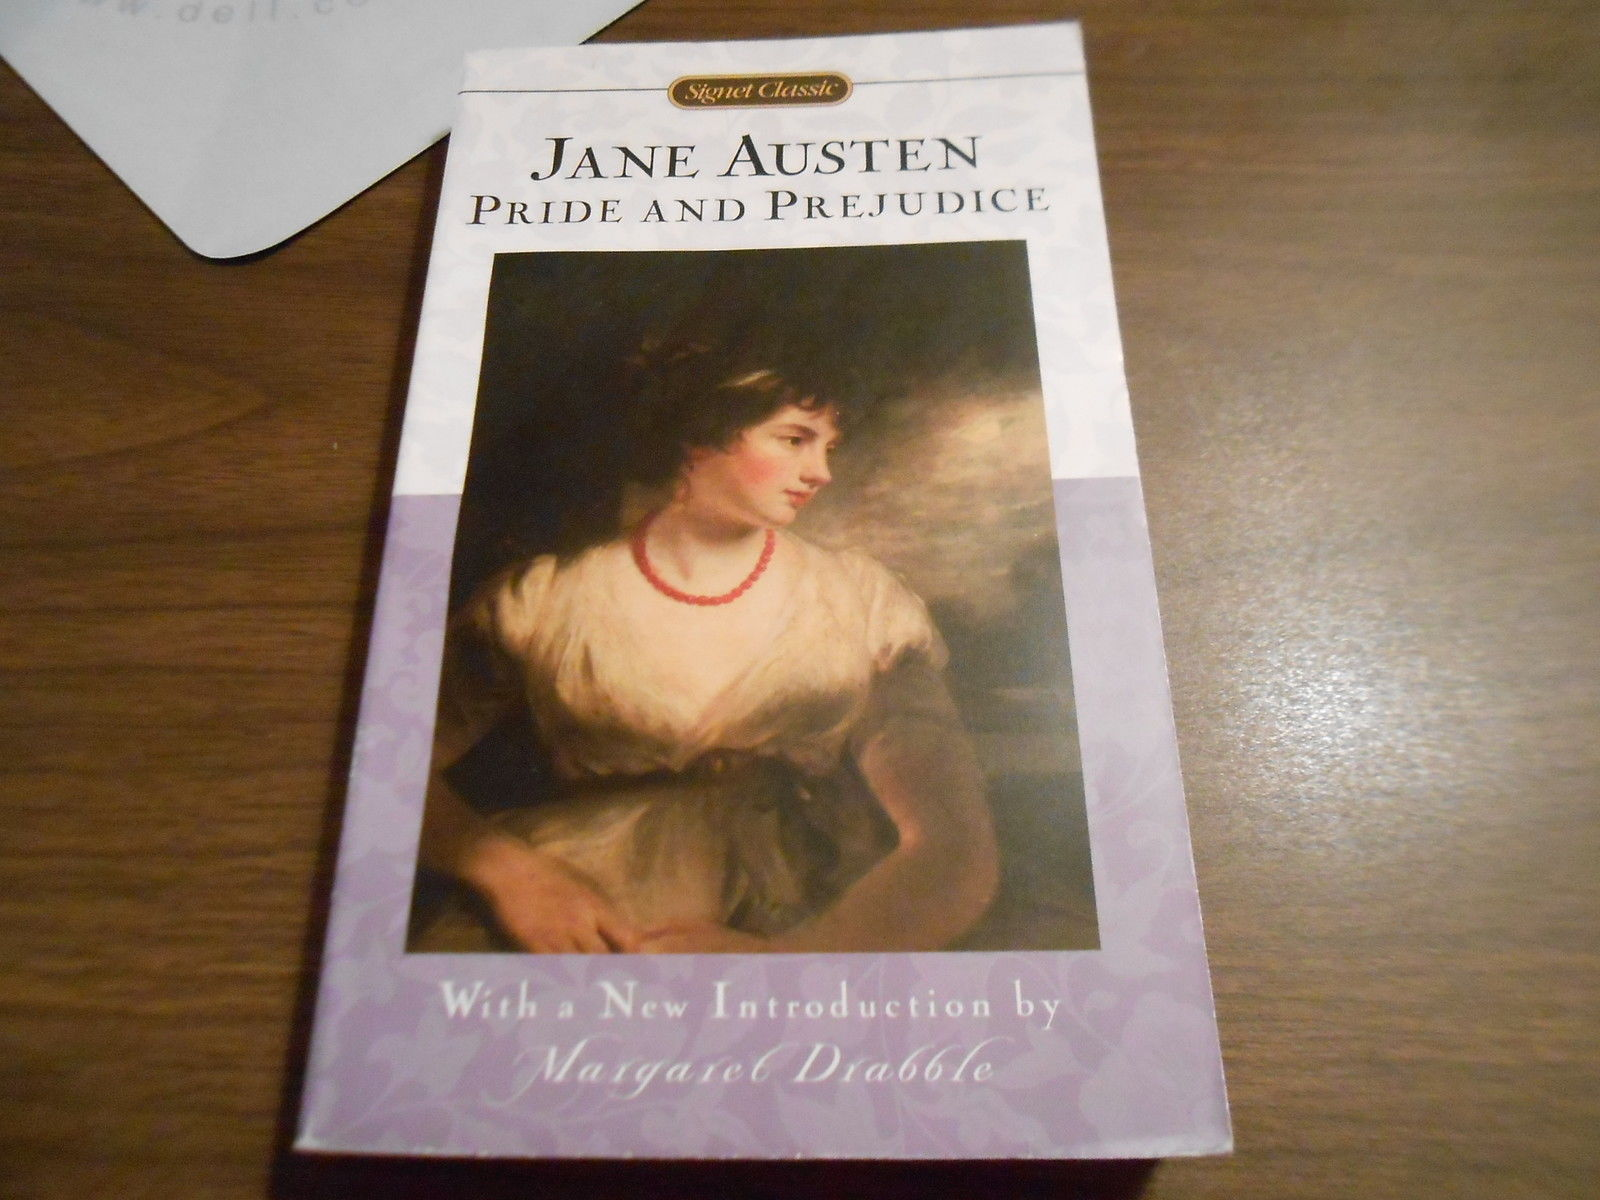 a summary of pride and prejudice a novel by jane austin Pride and prejudice: pride and prejudice, romantic novel by jane austen, published anonymously in three volumes in 1813 a classic of english literature, written with incisive wit and superb character delineation, it centers on the turbulent relationship between elizabeth bennet and fitzwilliam darcy.